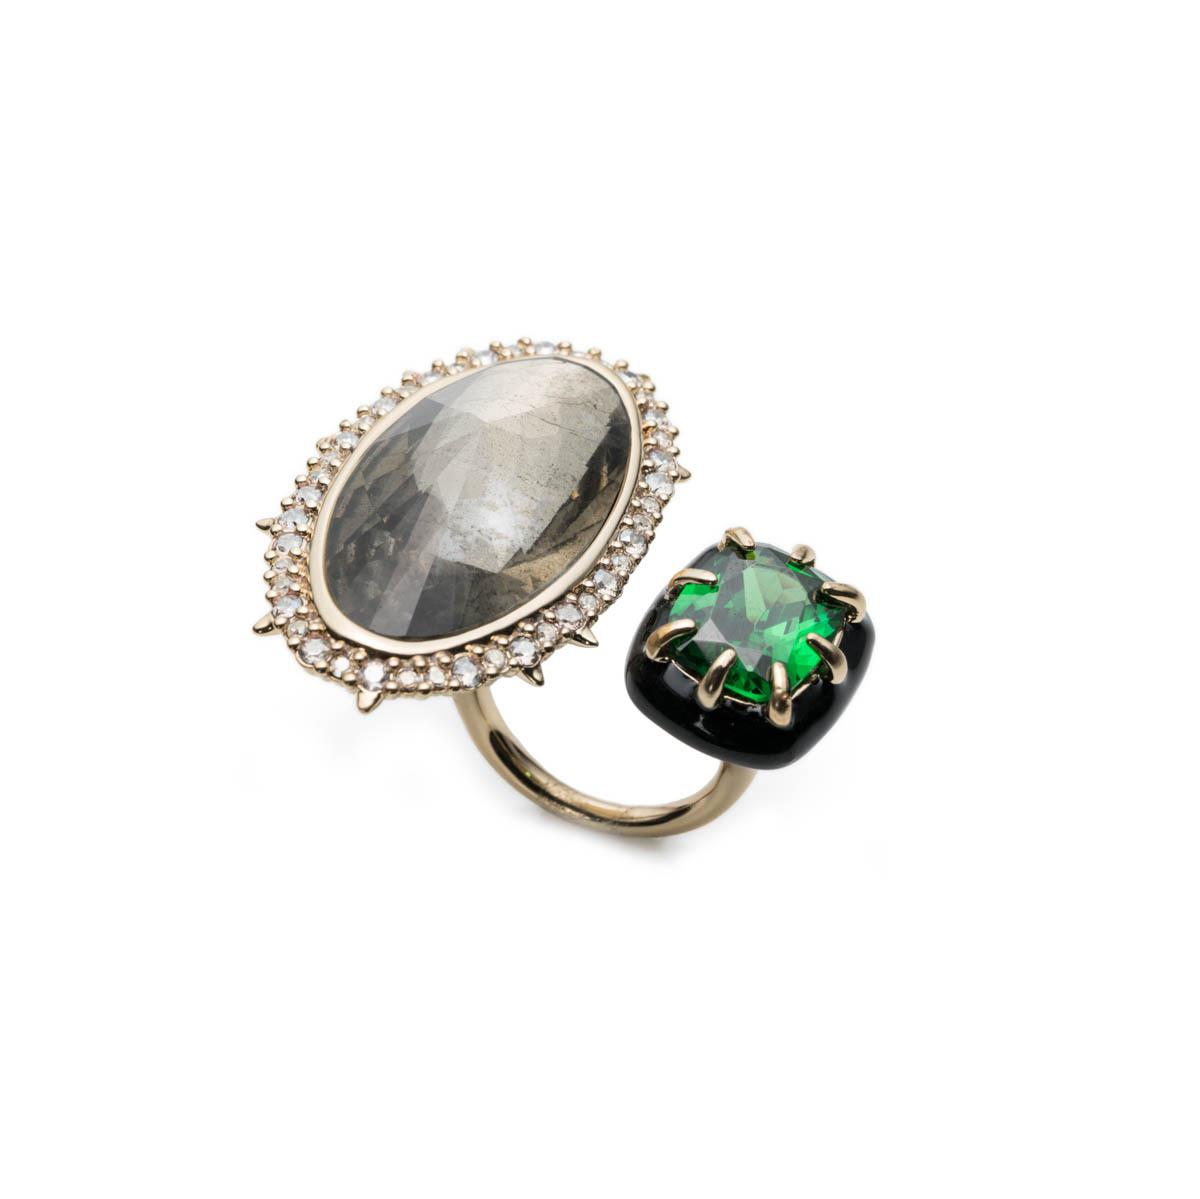 Alexis Bittar Pyrite & Emerald Cubic Zirconia Cocktail Ring